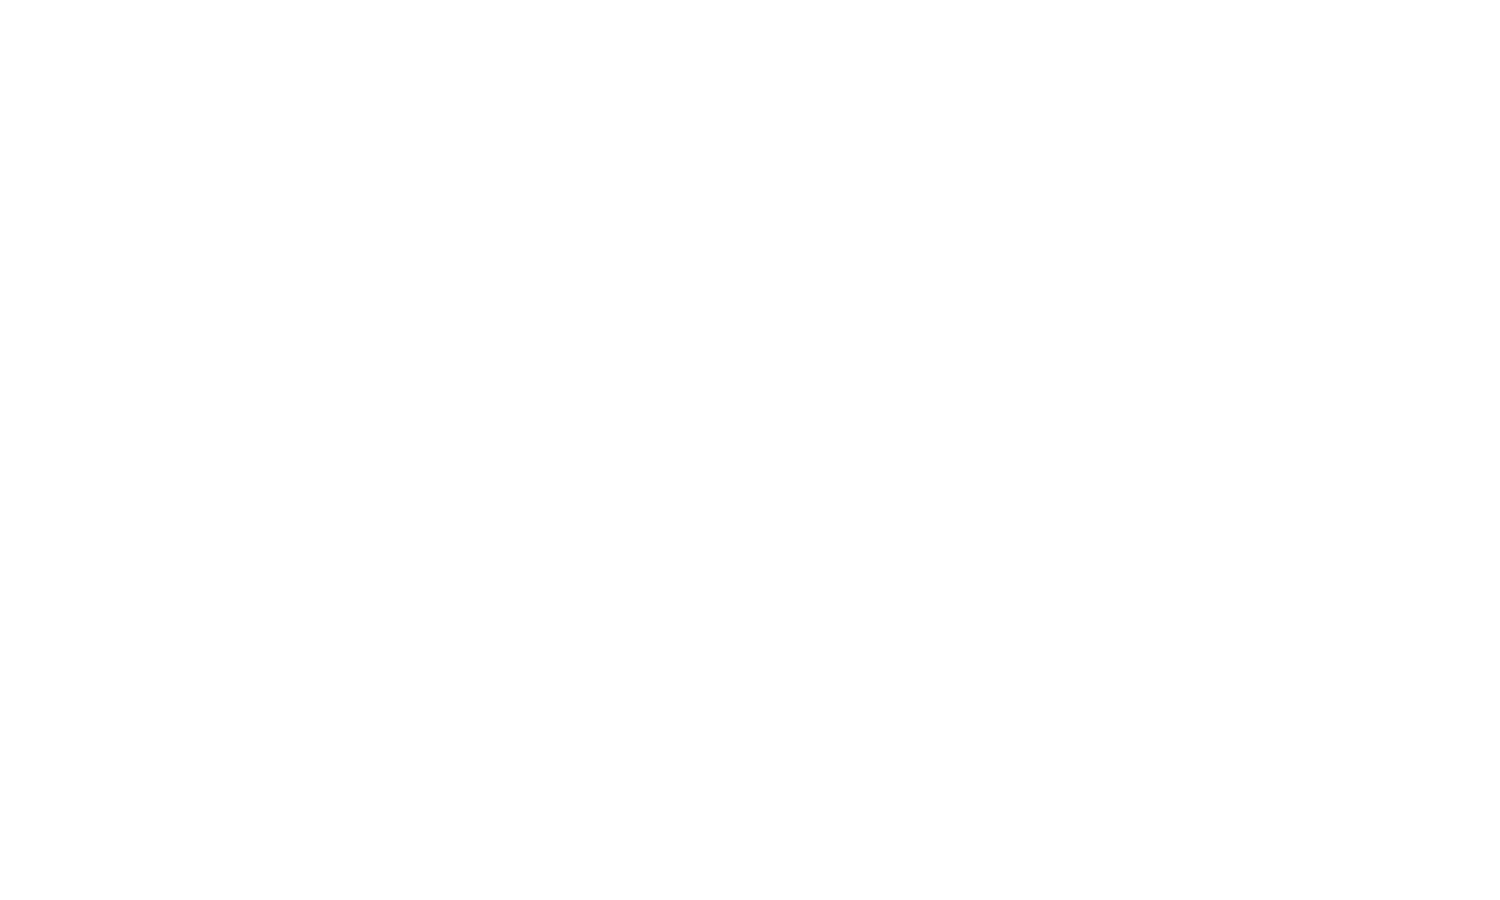 Mejuri logo in white